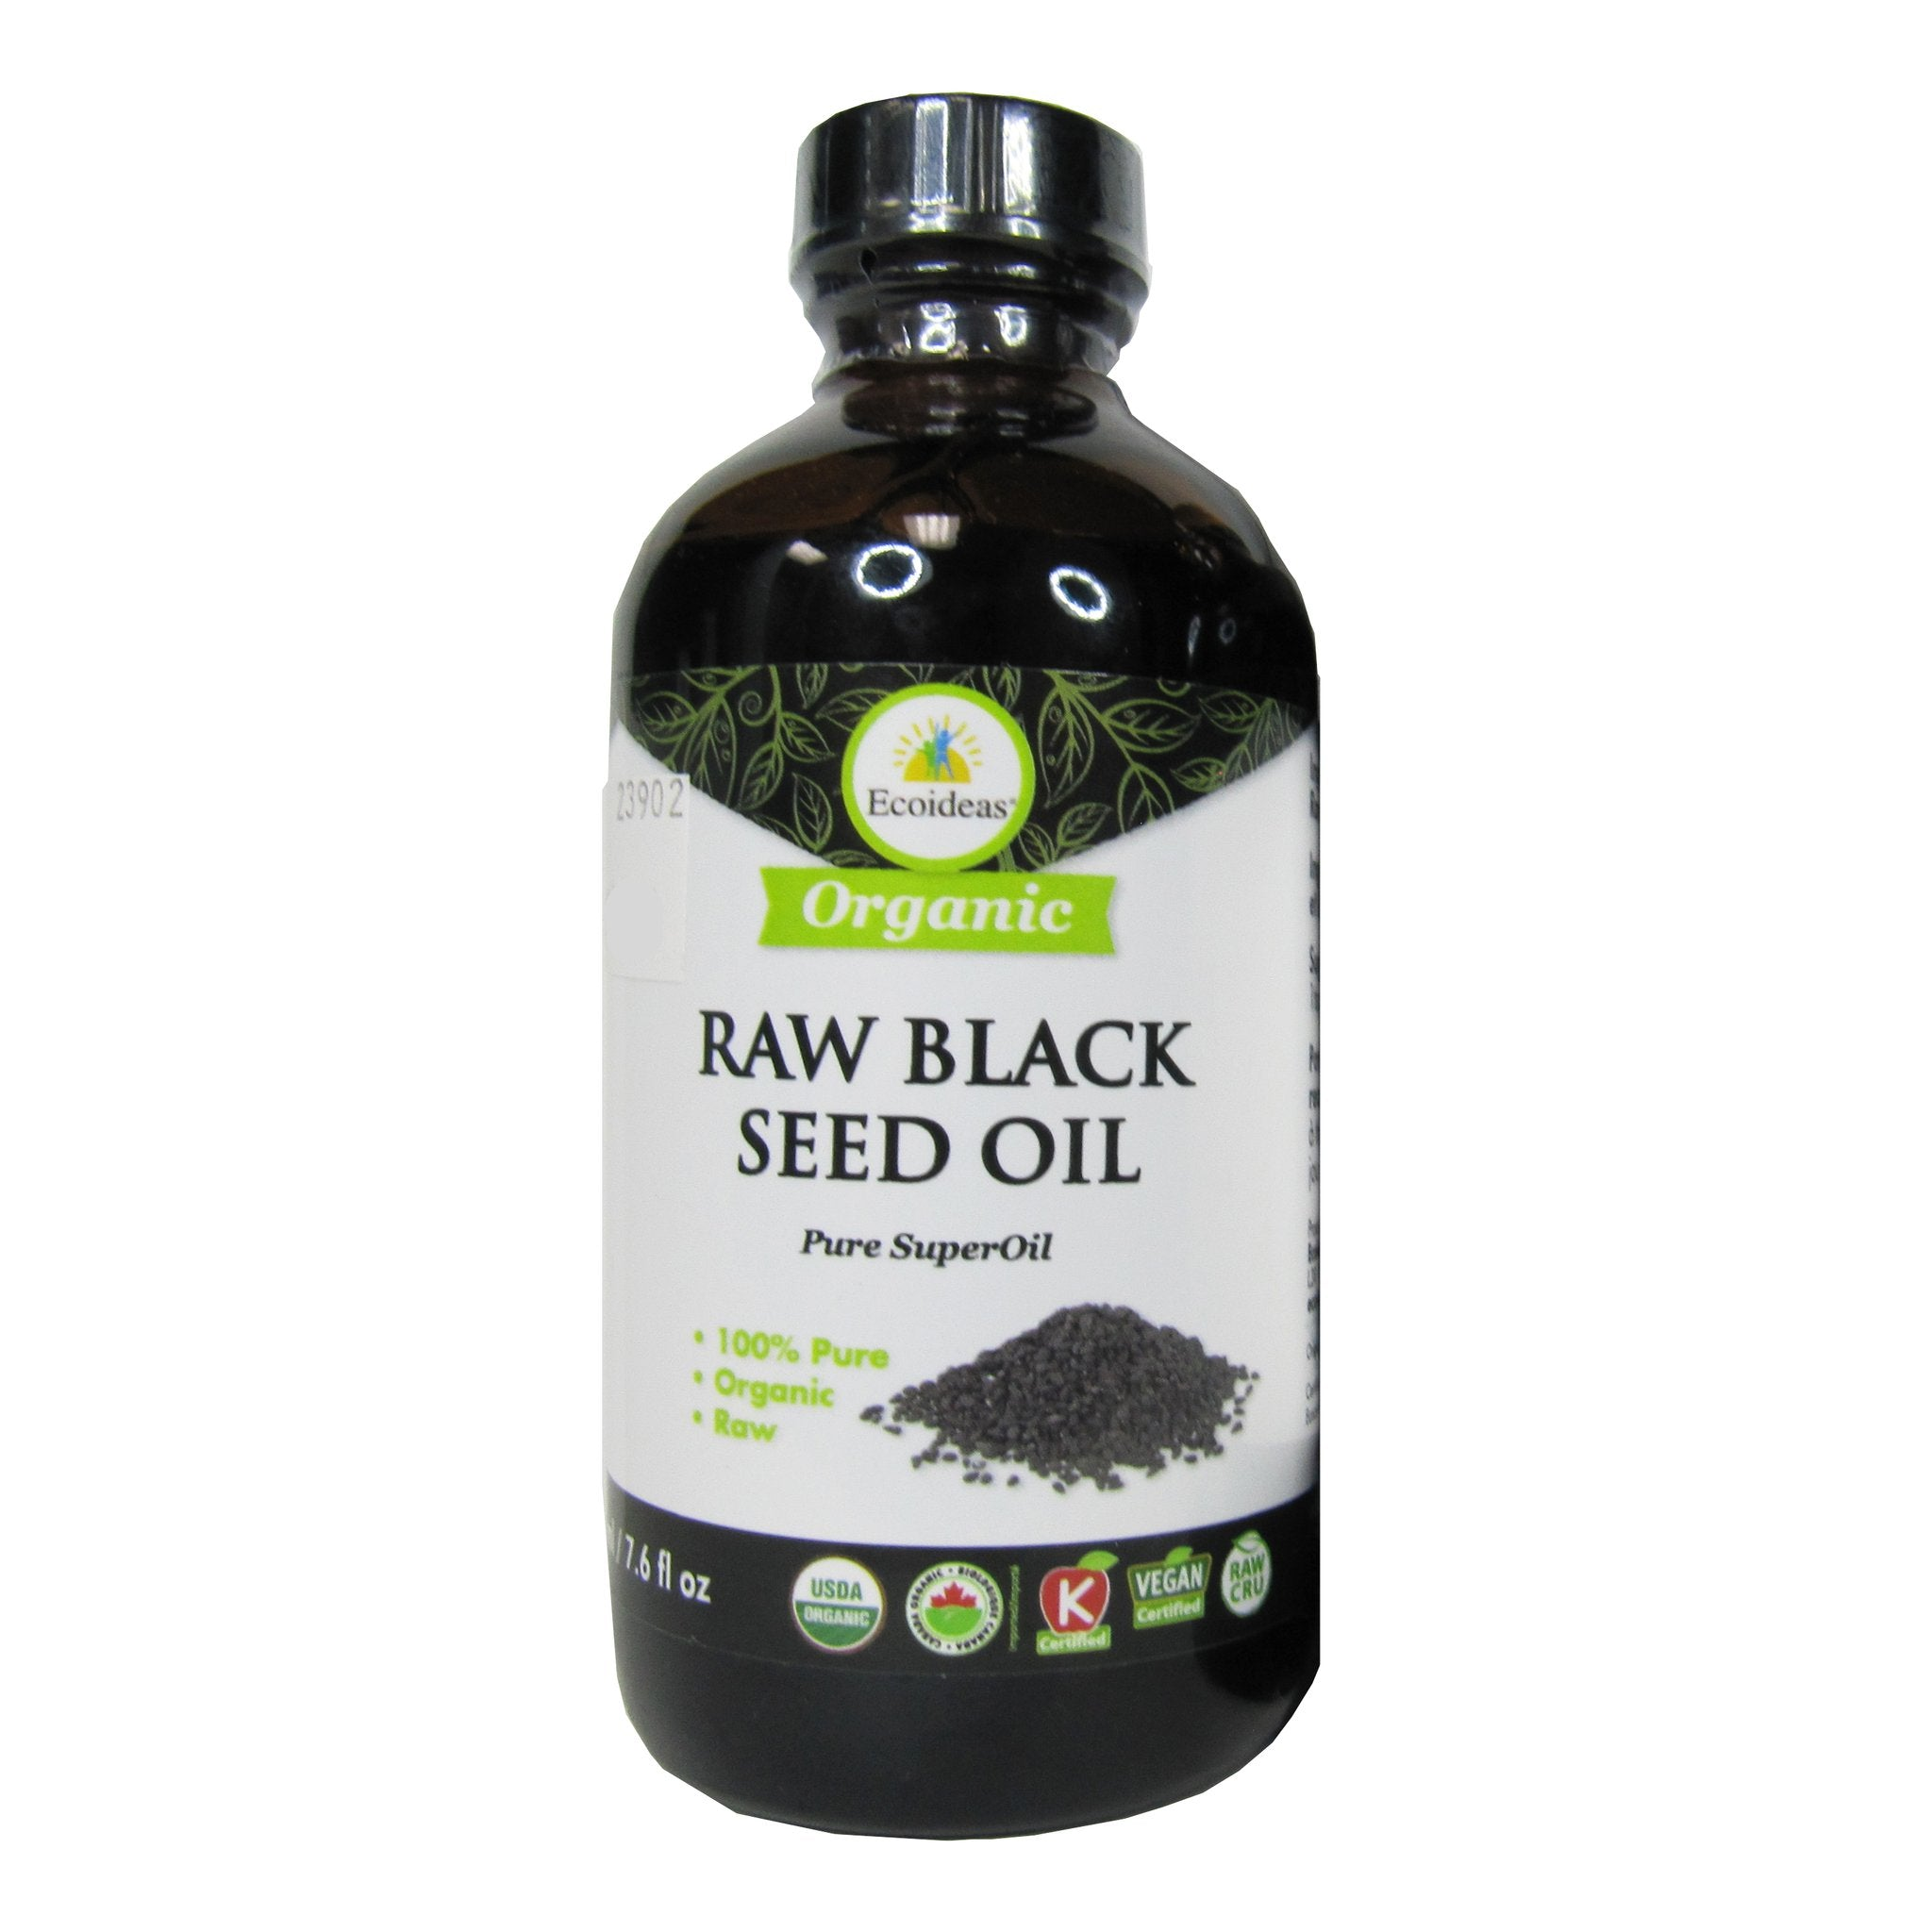 Raw Black Seed Oil Organic